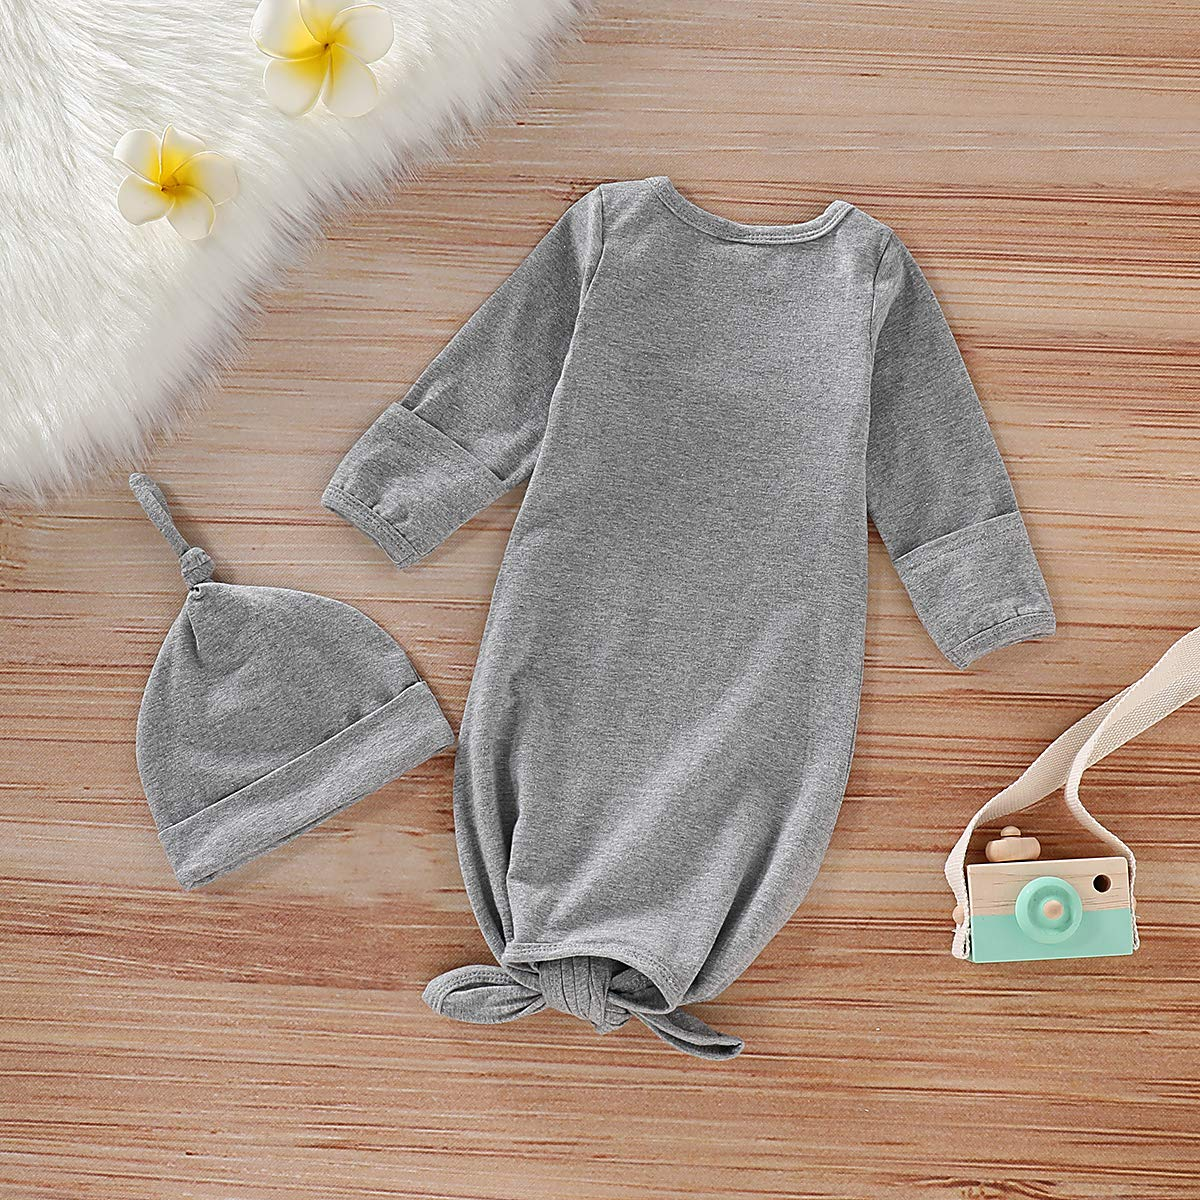 Infant Baby Boy Girl Animal Clothes Elephant Sleeper Gown Outfits Floral Sleepwear Romper Newborn Cute Nightgowns